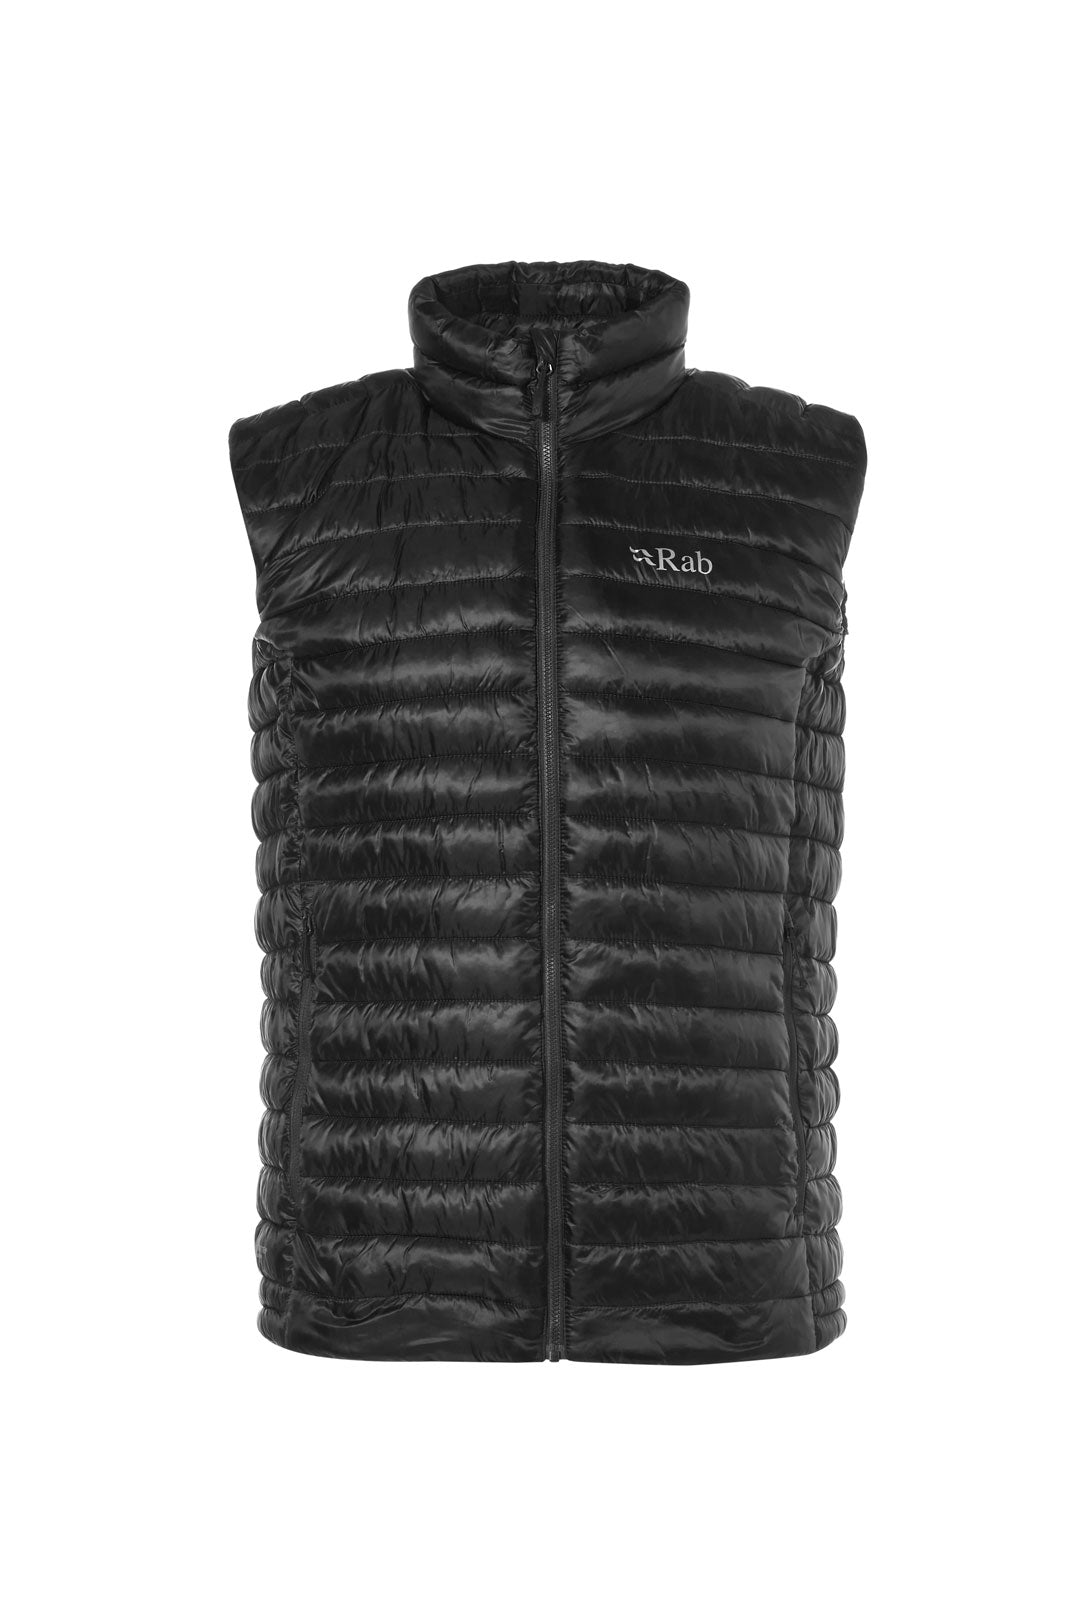 Rab Microlight Gilet for Men in Black